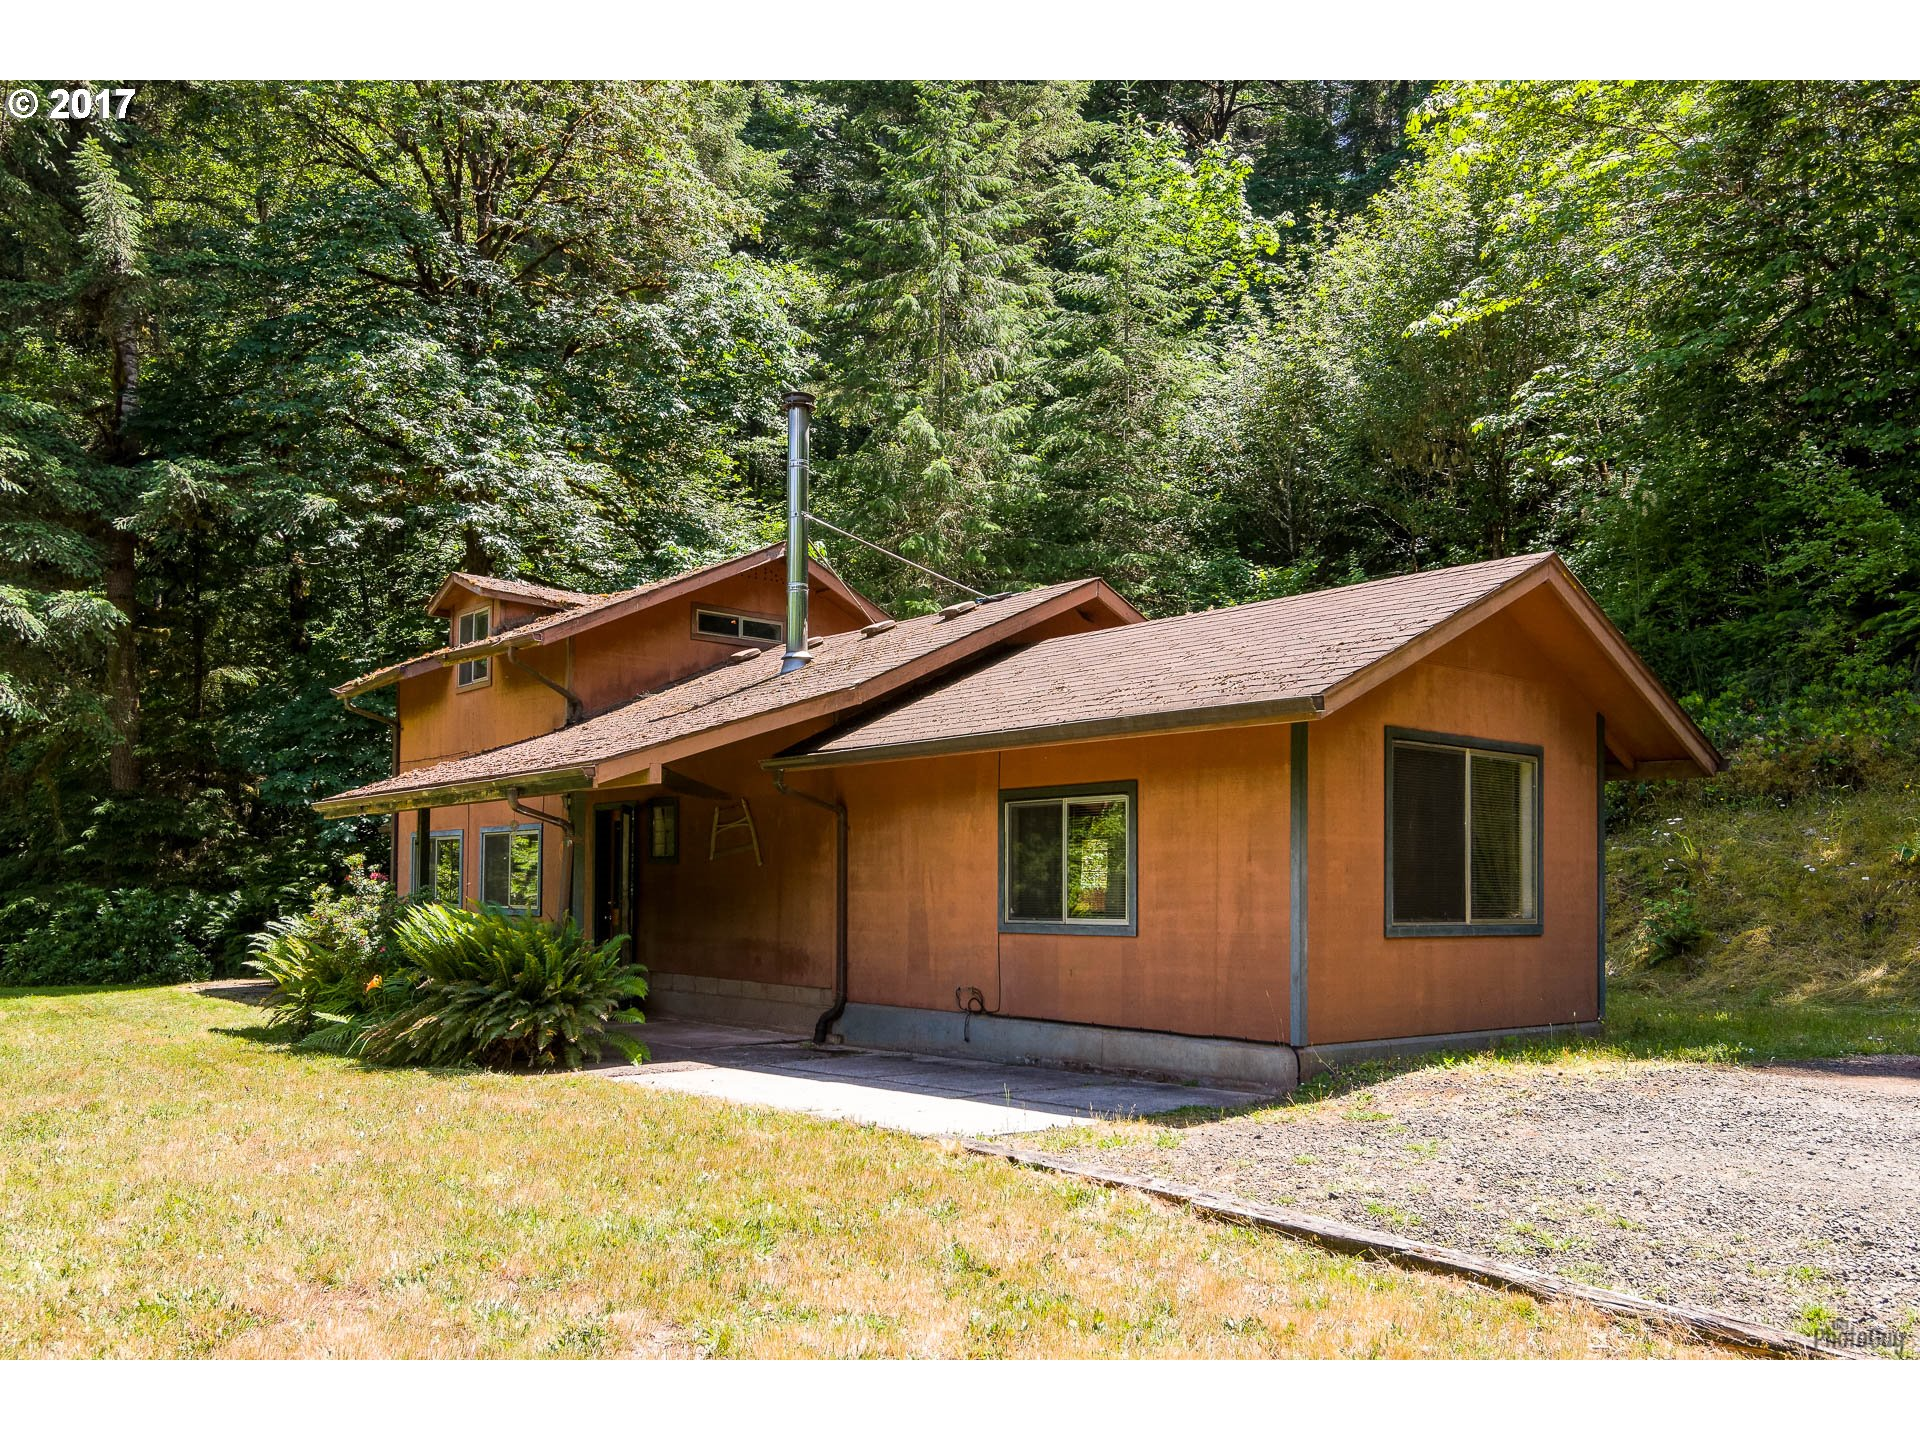 35100 PERKINS CREEK RD, Cottage Grove, OR 97424